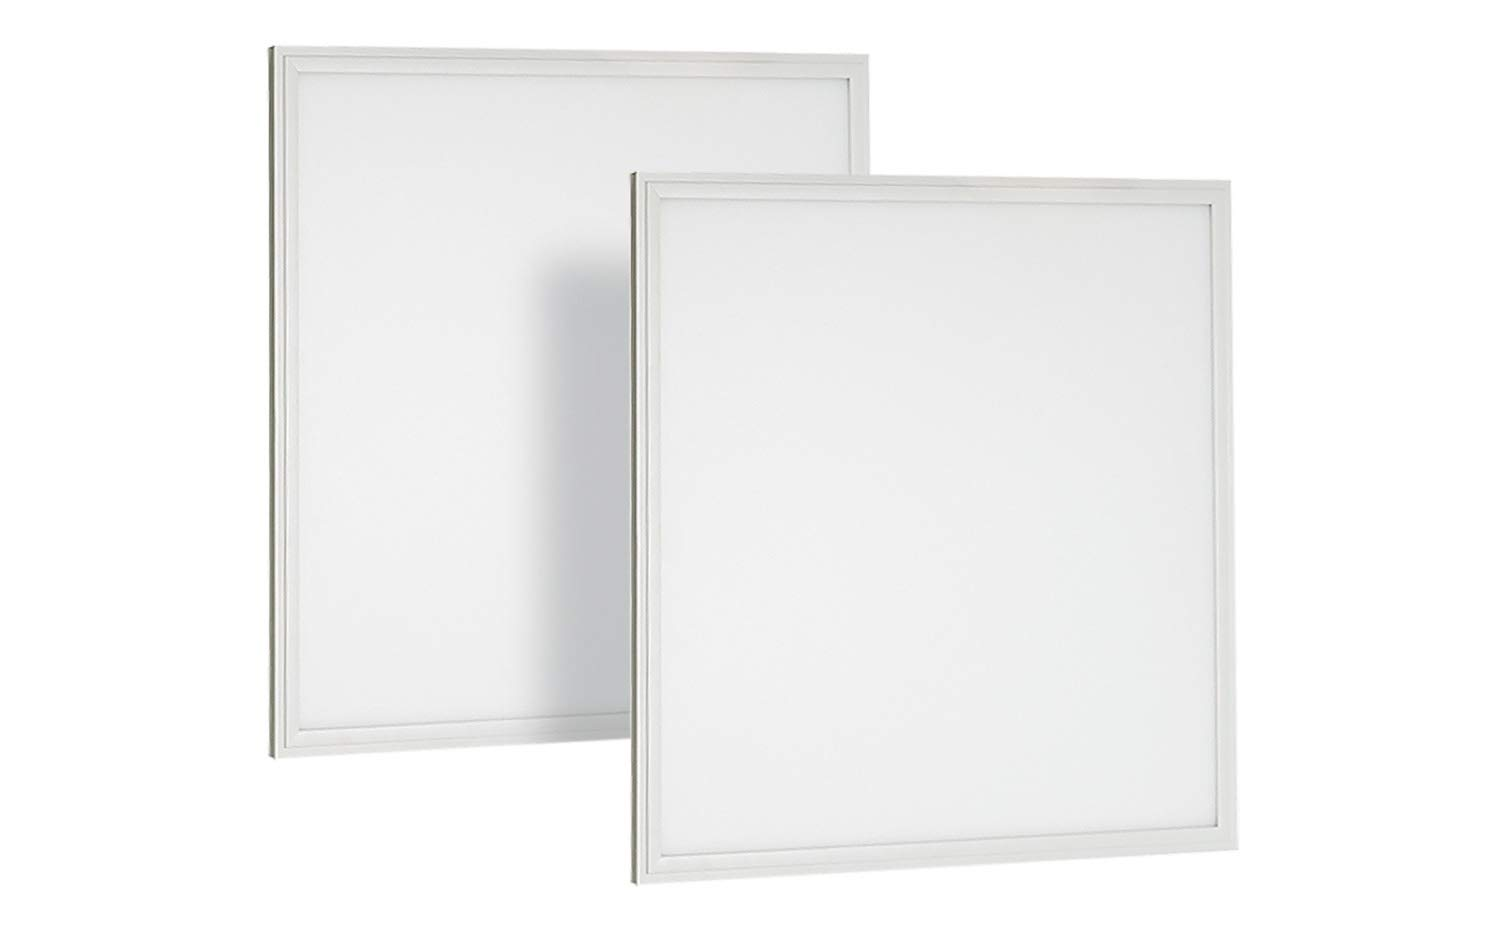 Neox 2x2 FT 27W 4000K Flat LED Troffer Panel Light, 0-10V Dimmable Drop Ceiling Flat Panel, Recessed Edge-Lit Troffer Fixture, 3005lm UL & DLC - 2 Pack